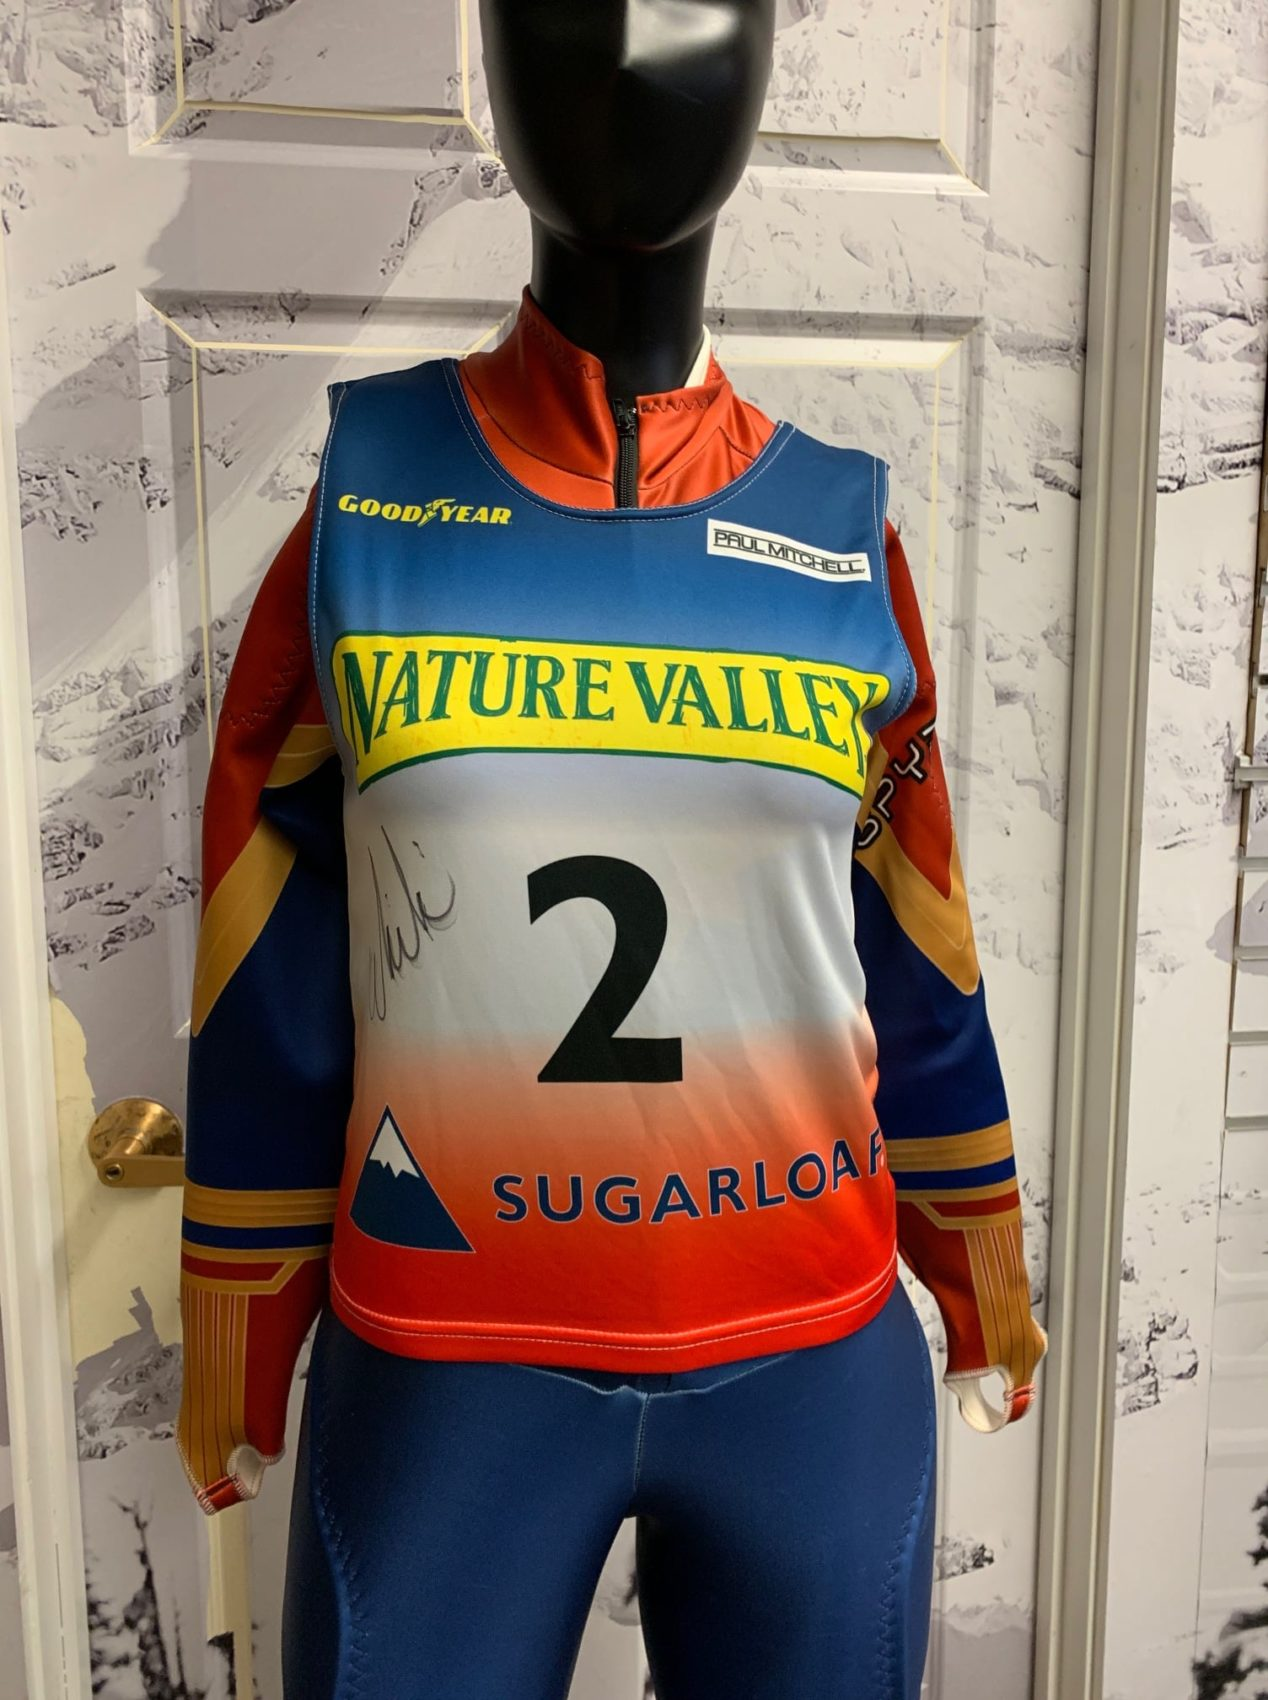 Killington, charity, KWCF, Mikaela Shiffrin, bib,